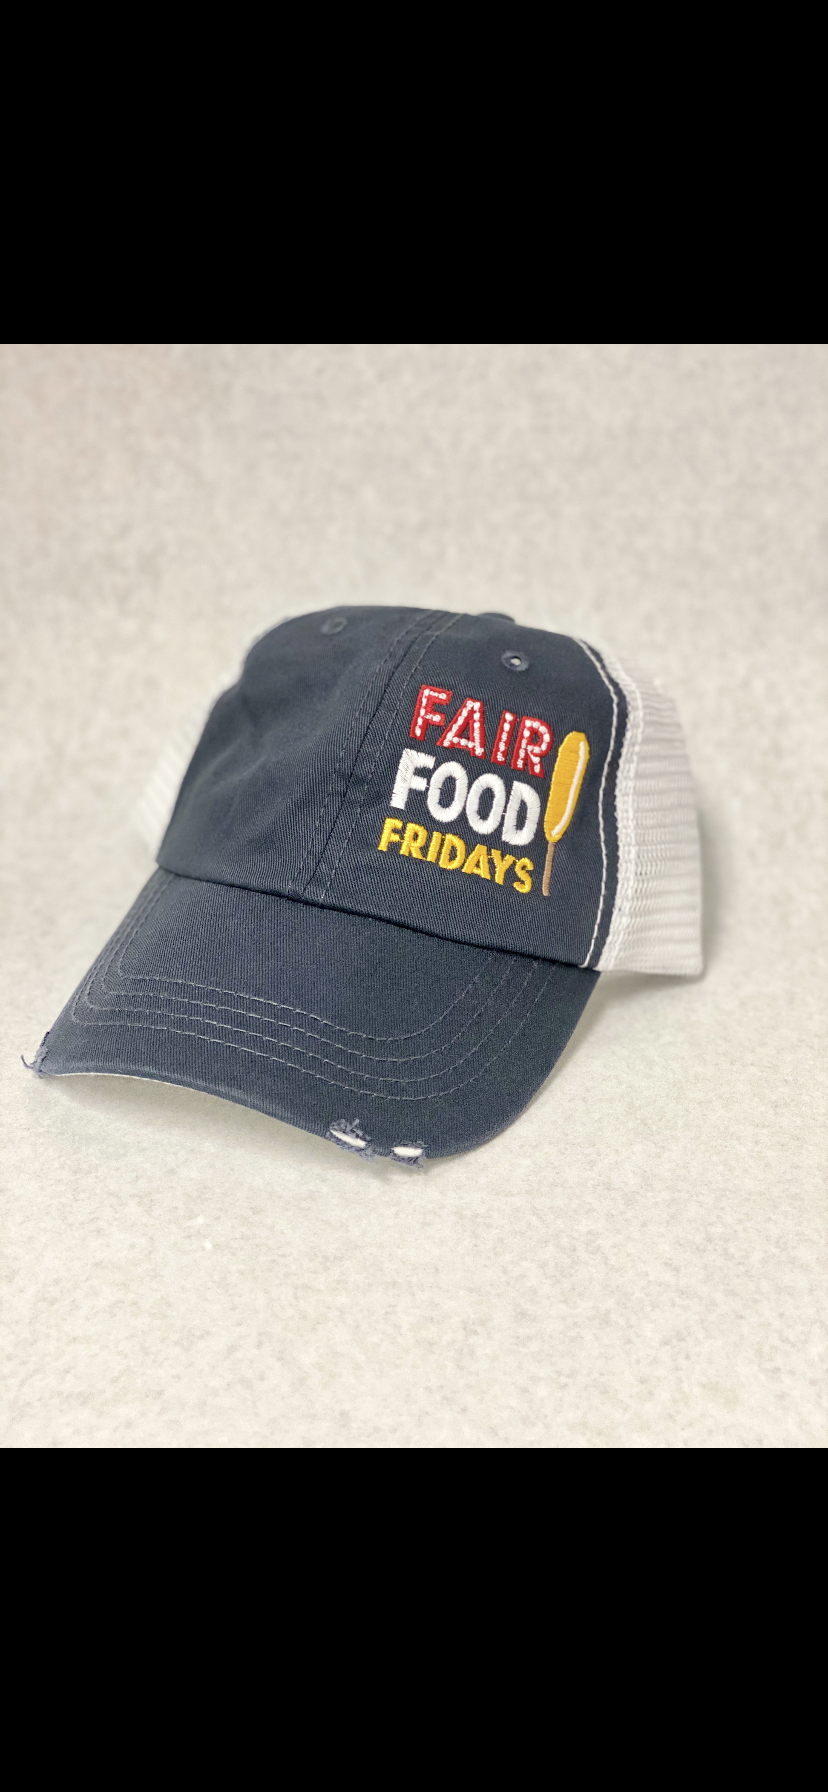 Fair Food Friday Hat